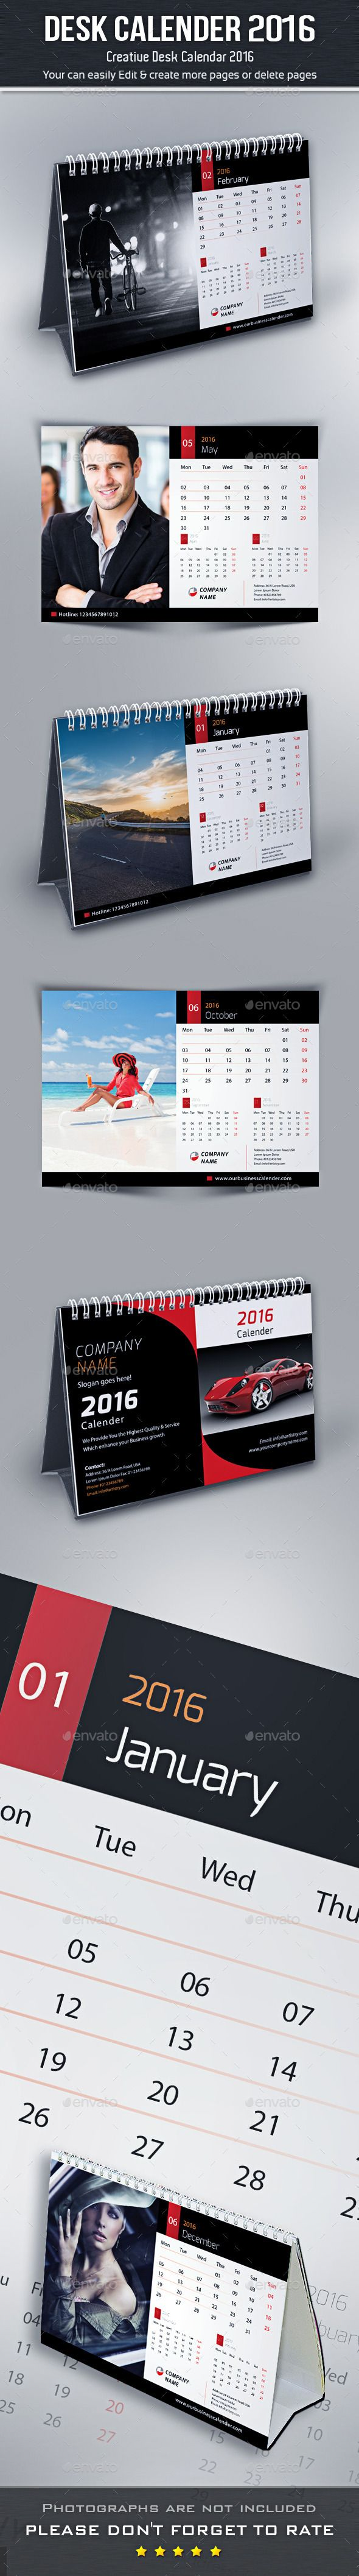 Desk Calendar 2016 Template #design Download: http://graphicriver.net/item/desk-calendar-2016-/12677515?ref=ksioks